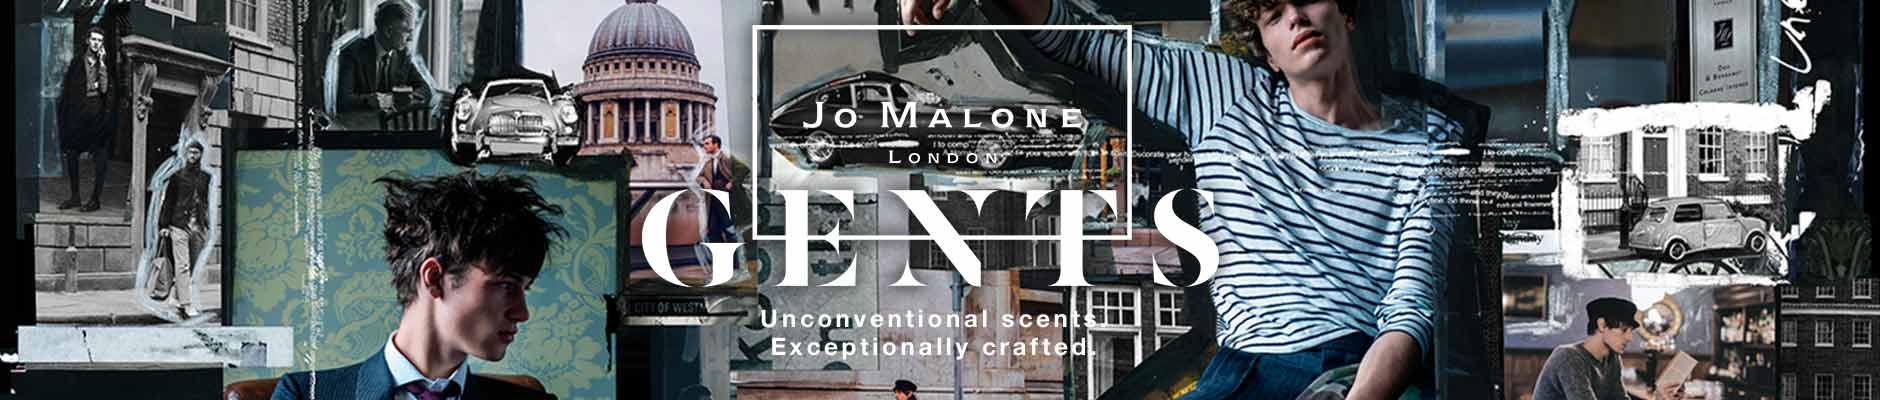 Jo Malone London - Gents, unconventional scents exceptionally crafted.